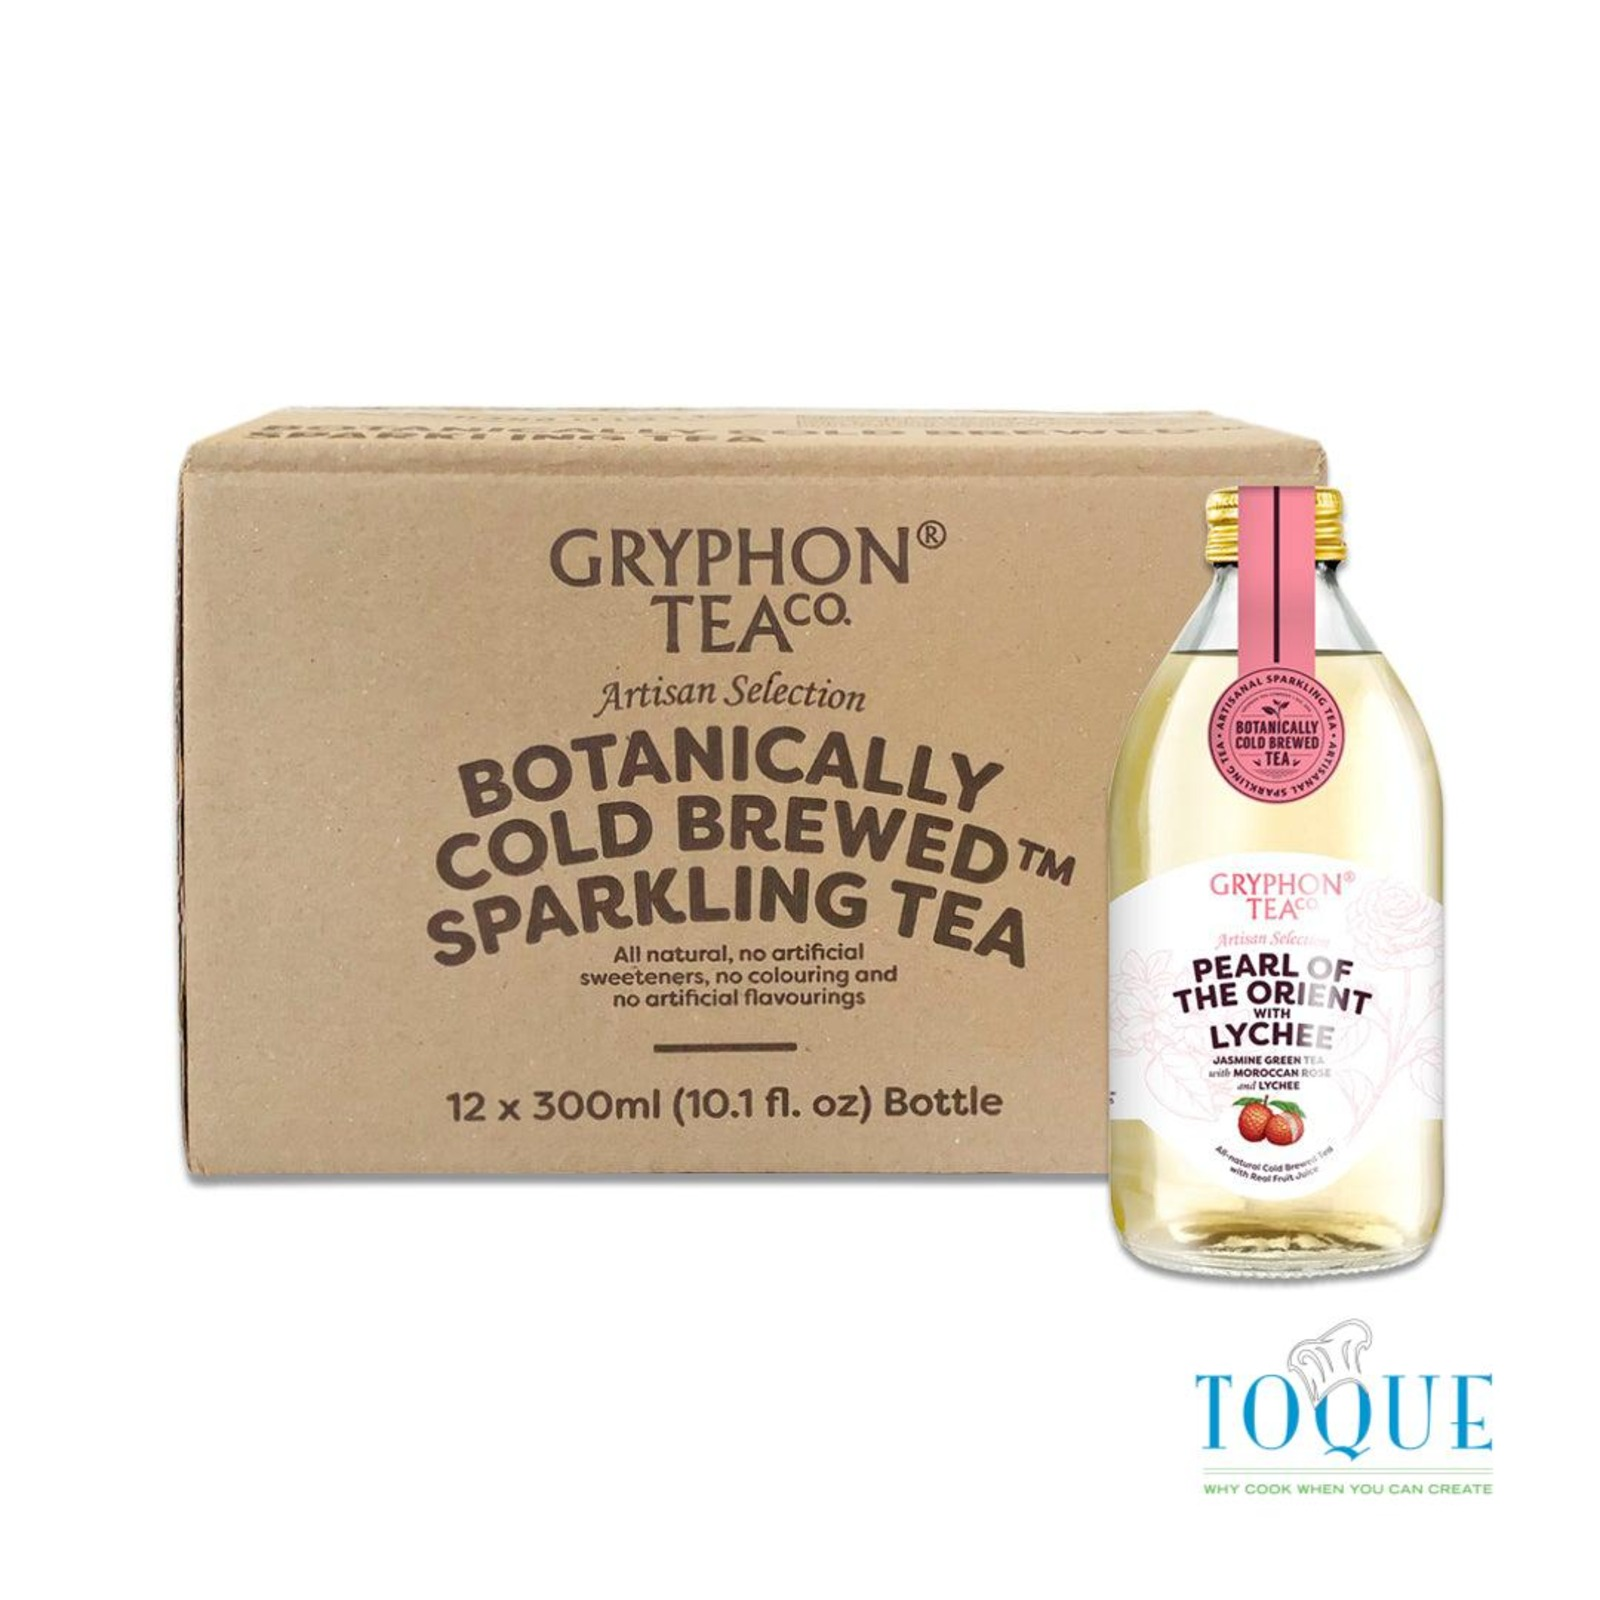 Gryphon Sparkling Pearl Of The Orient Lychee